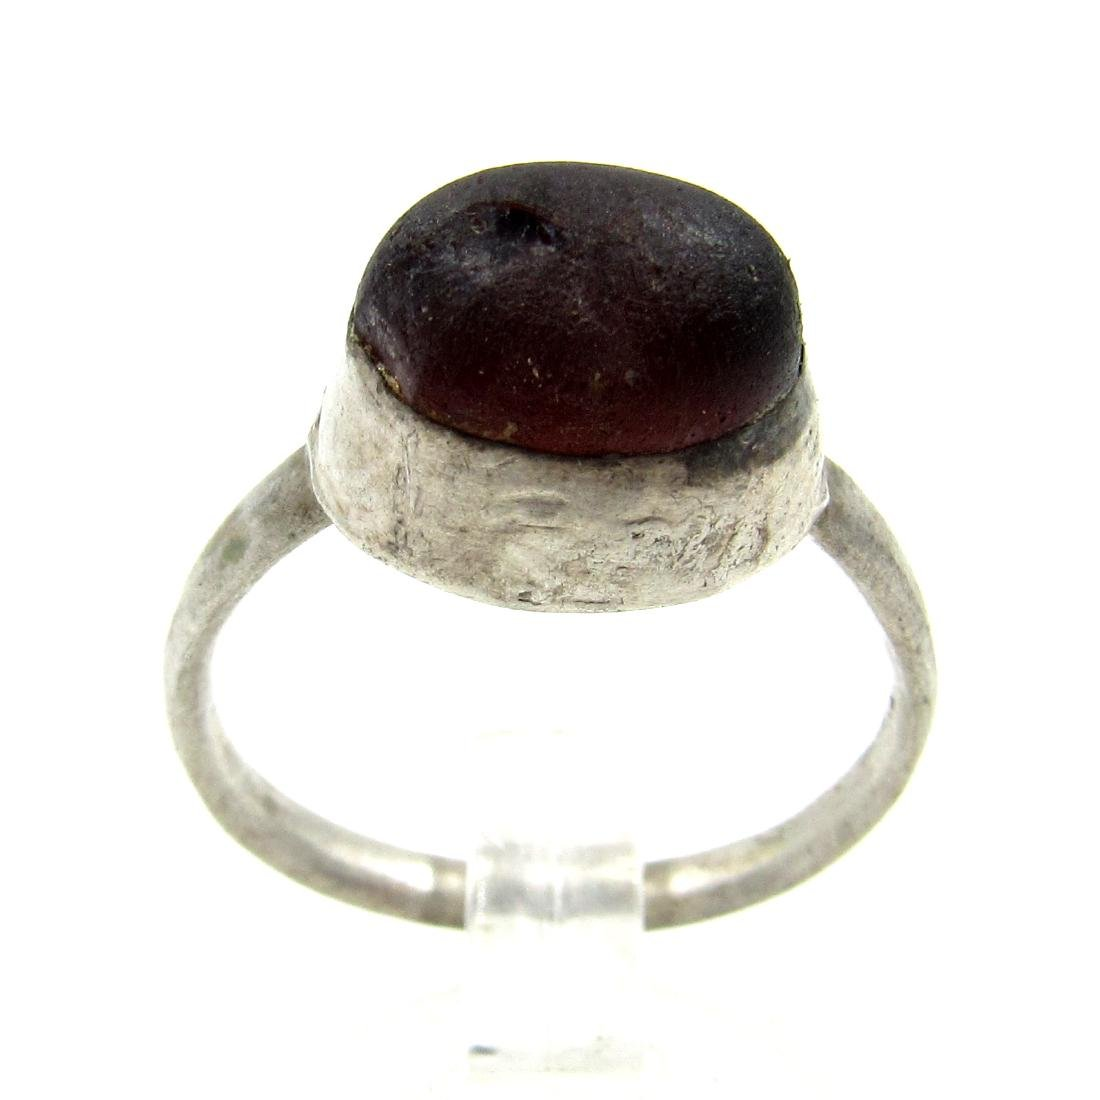 Medieval Viking Era Silver Ring with Stone